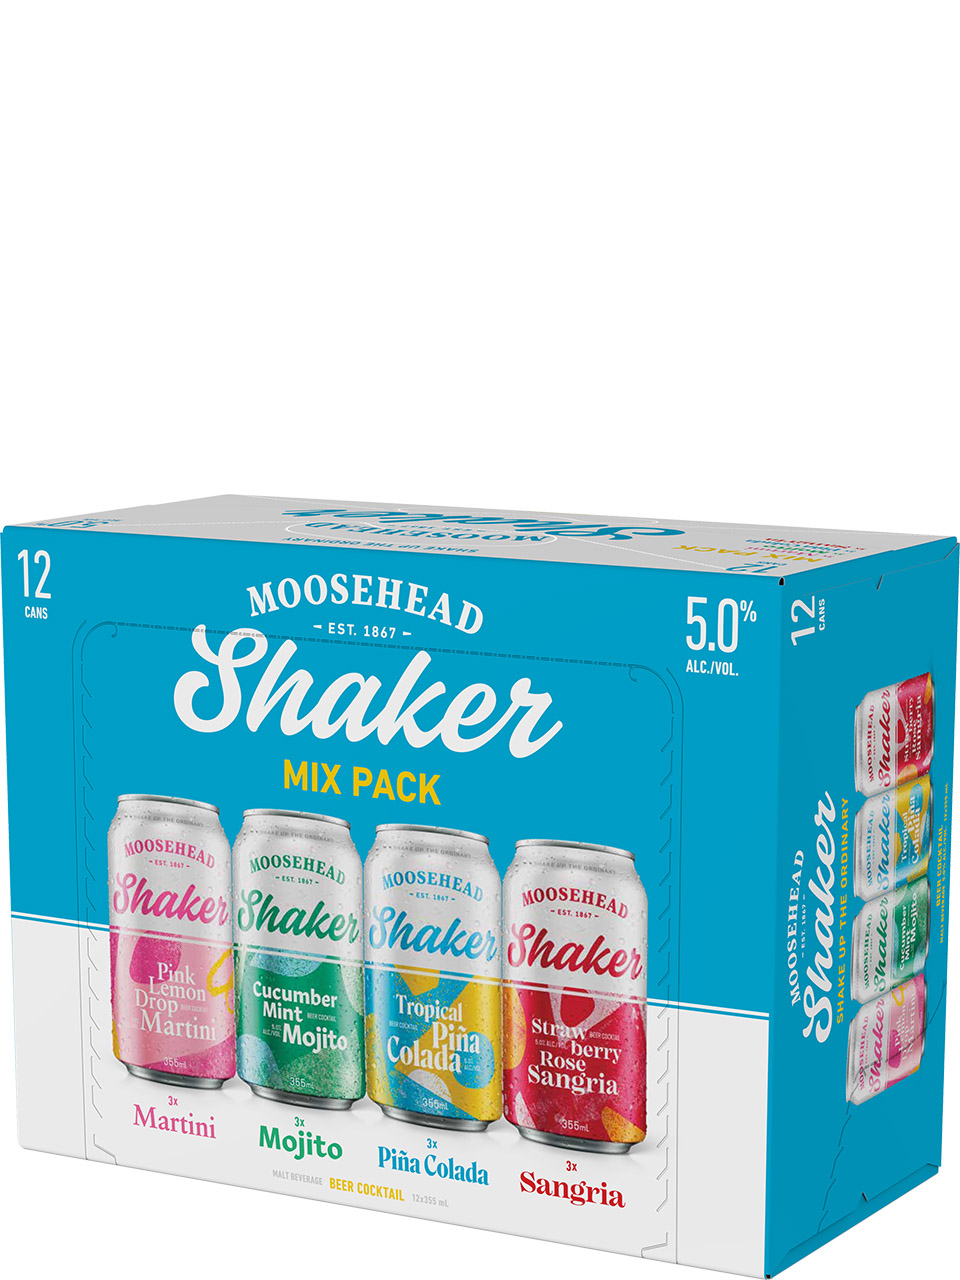 Moosehead Shaker Mix Pack 12pk Cans